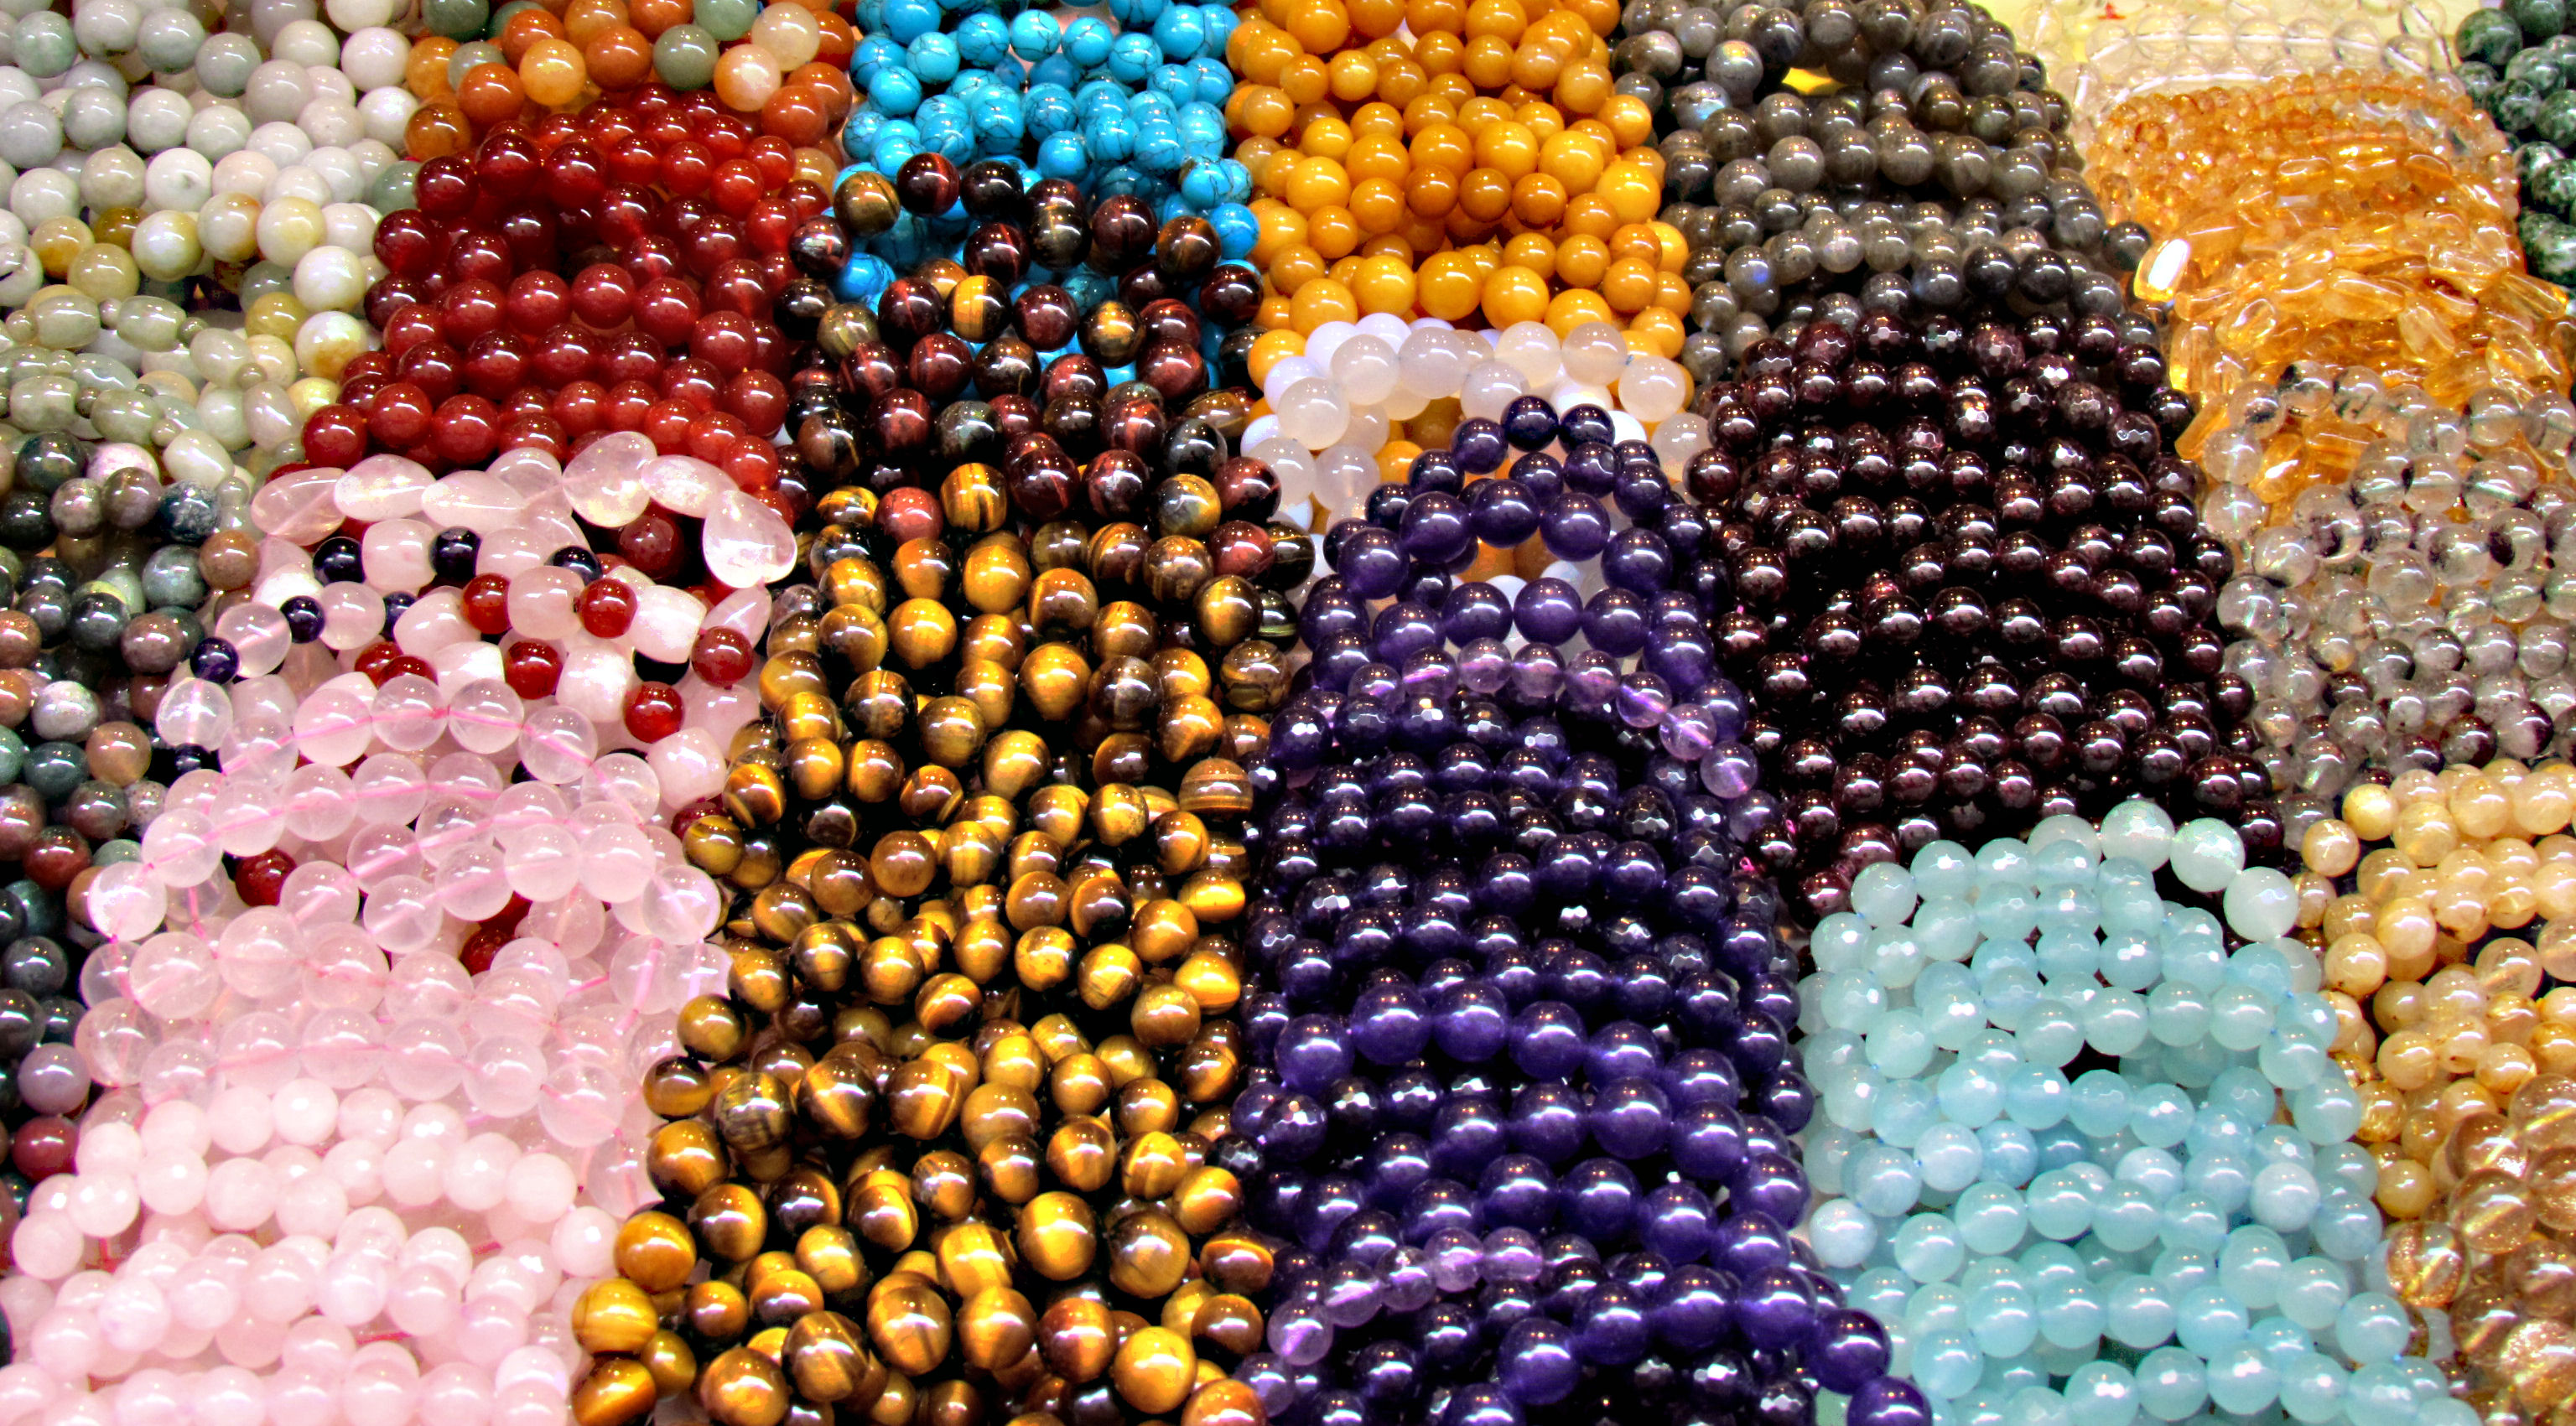 hubei arrived natural online jewelry beads in dallas design making suburb turquoise supplies wholesale and findings img